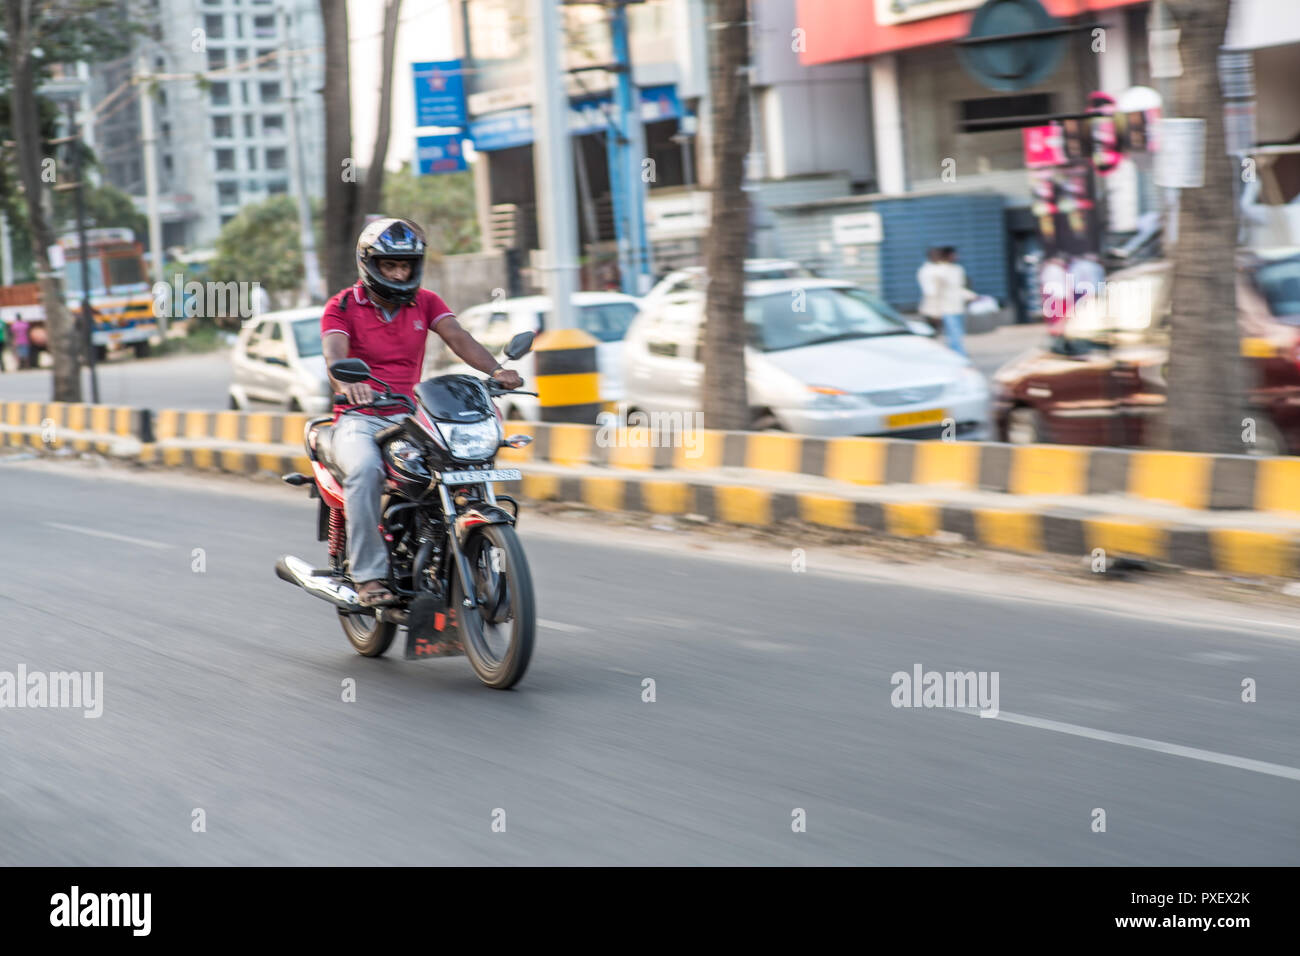 Speeding motorcycle in a Indian city - Stock Image